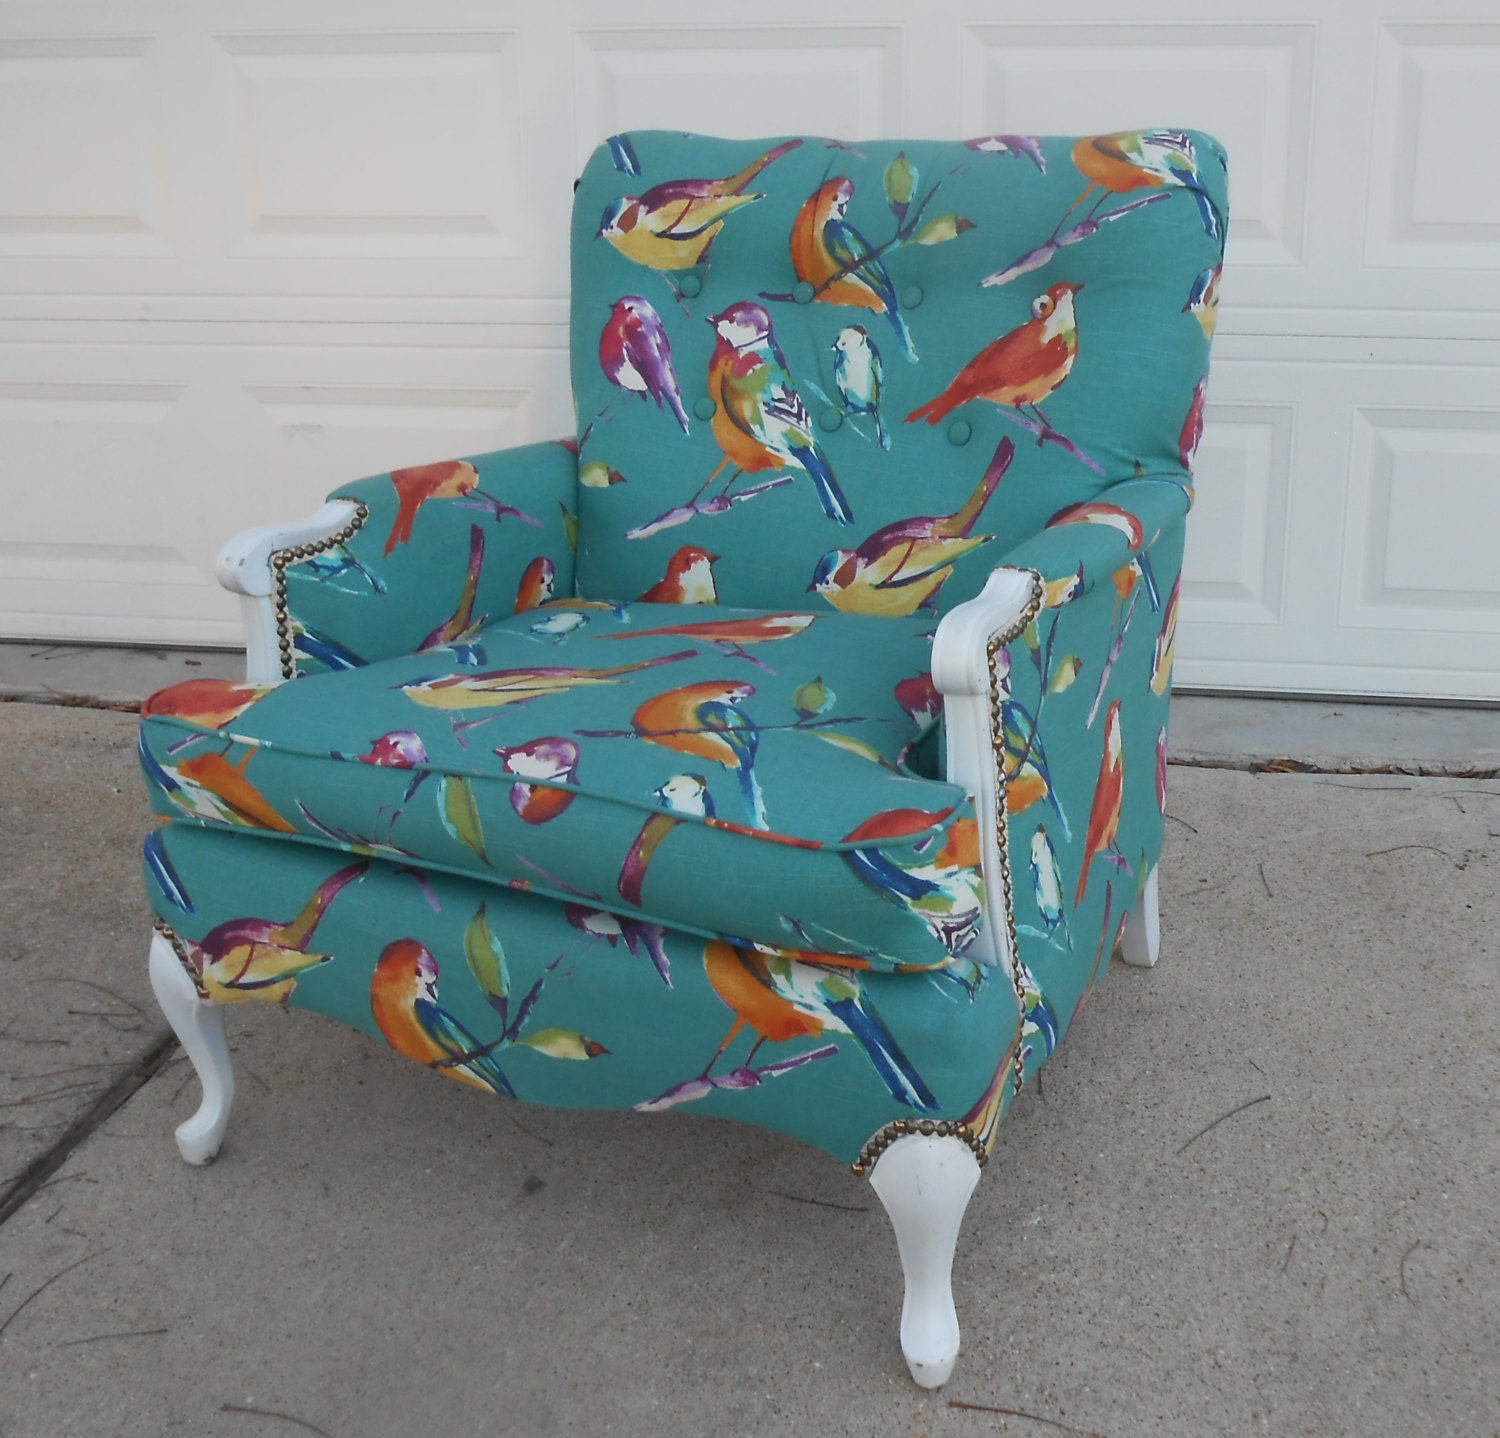 Vintage Mid Century Tufted Lounge Chair 1950s Living Room New